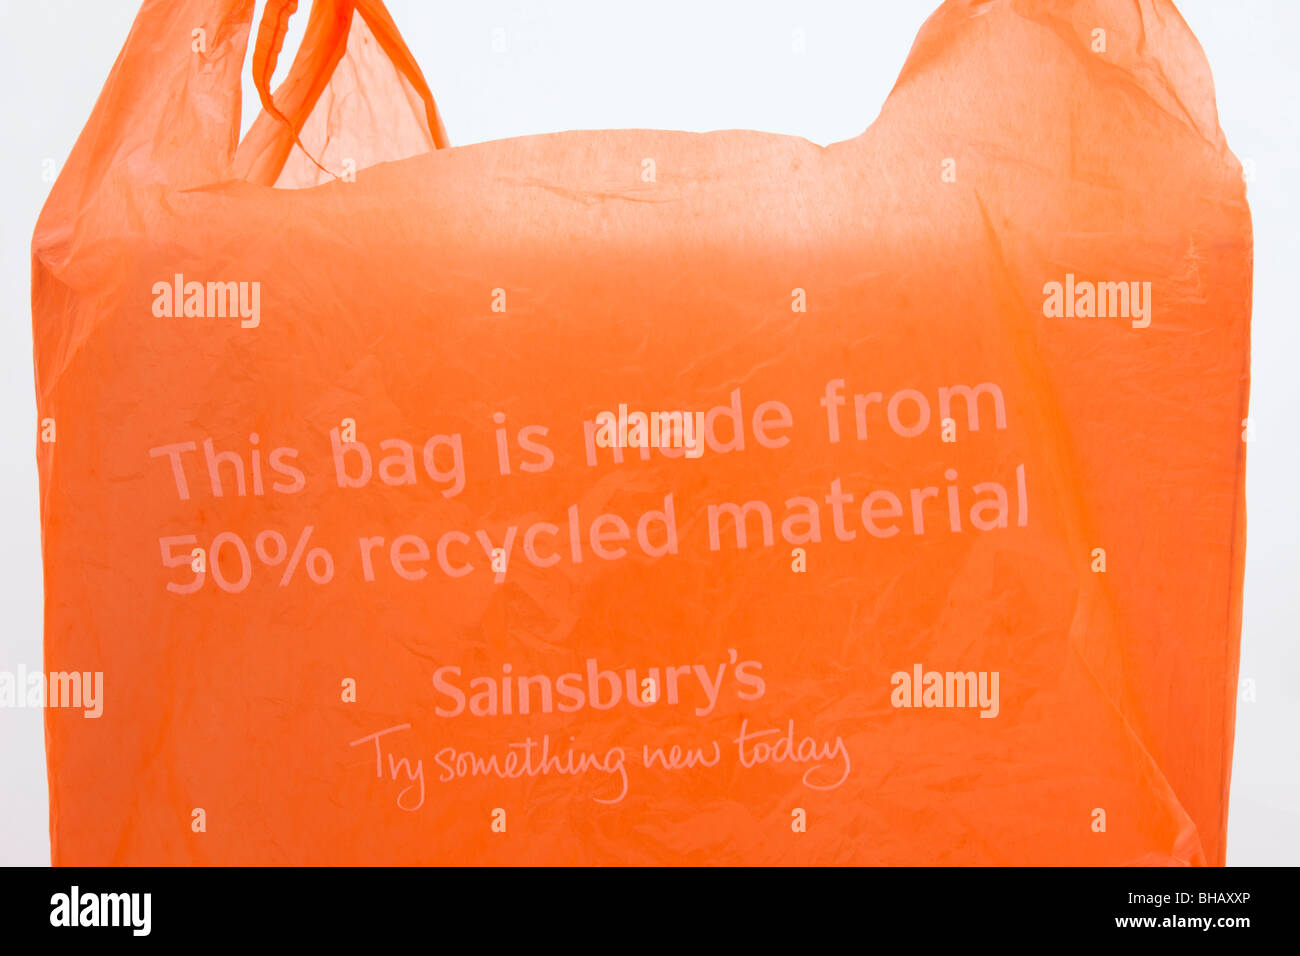 Sainsbury's single-use plastic carrier bag made from 50% recycled materials. England, UK, Britain - Stock Image